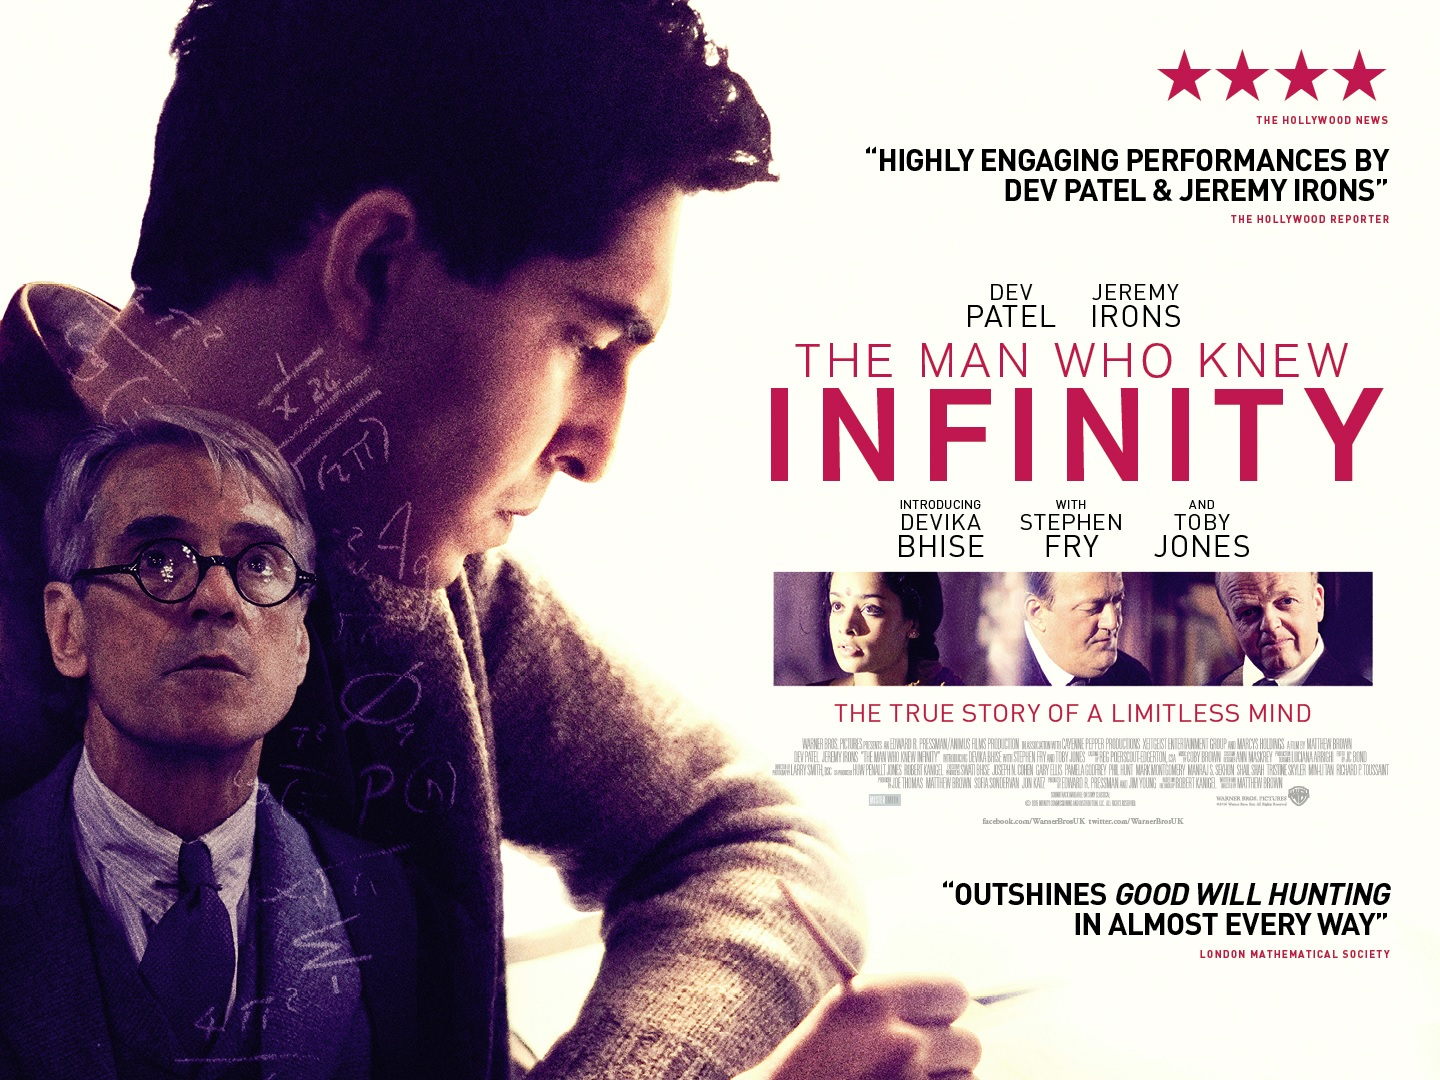 The Man Who Knew Infinity (2016)